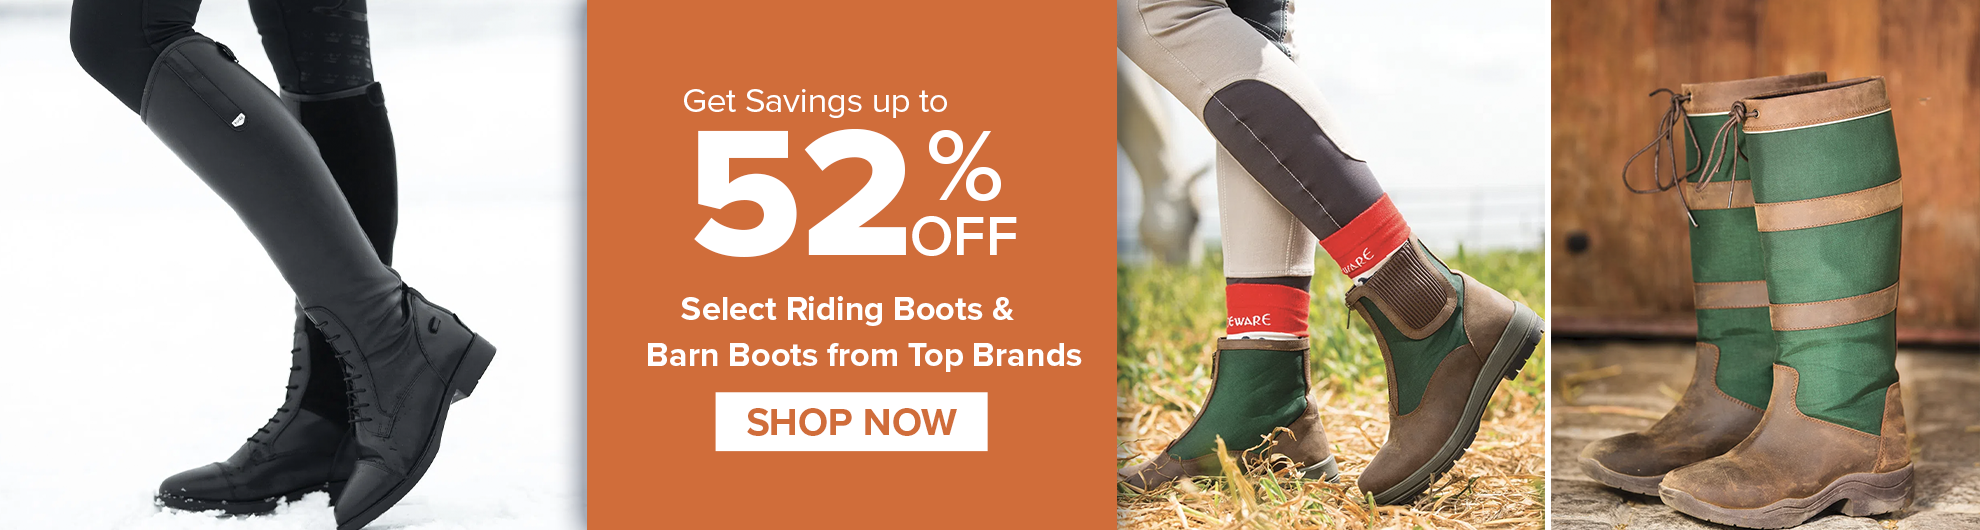 Riding Boots & Barn Boots on Sale